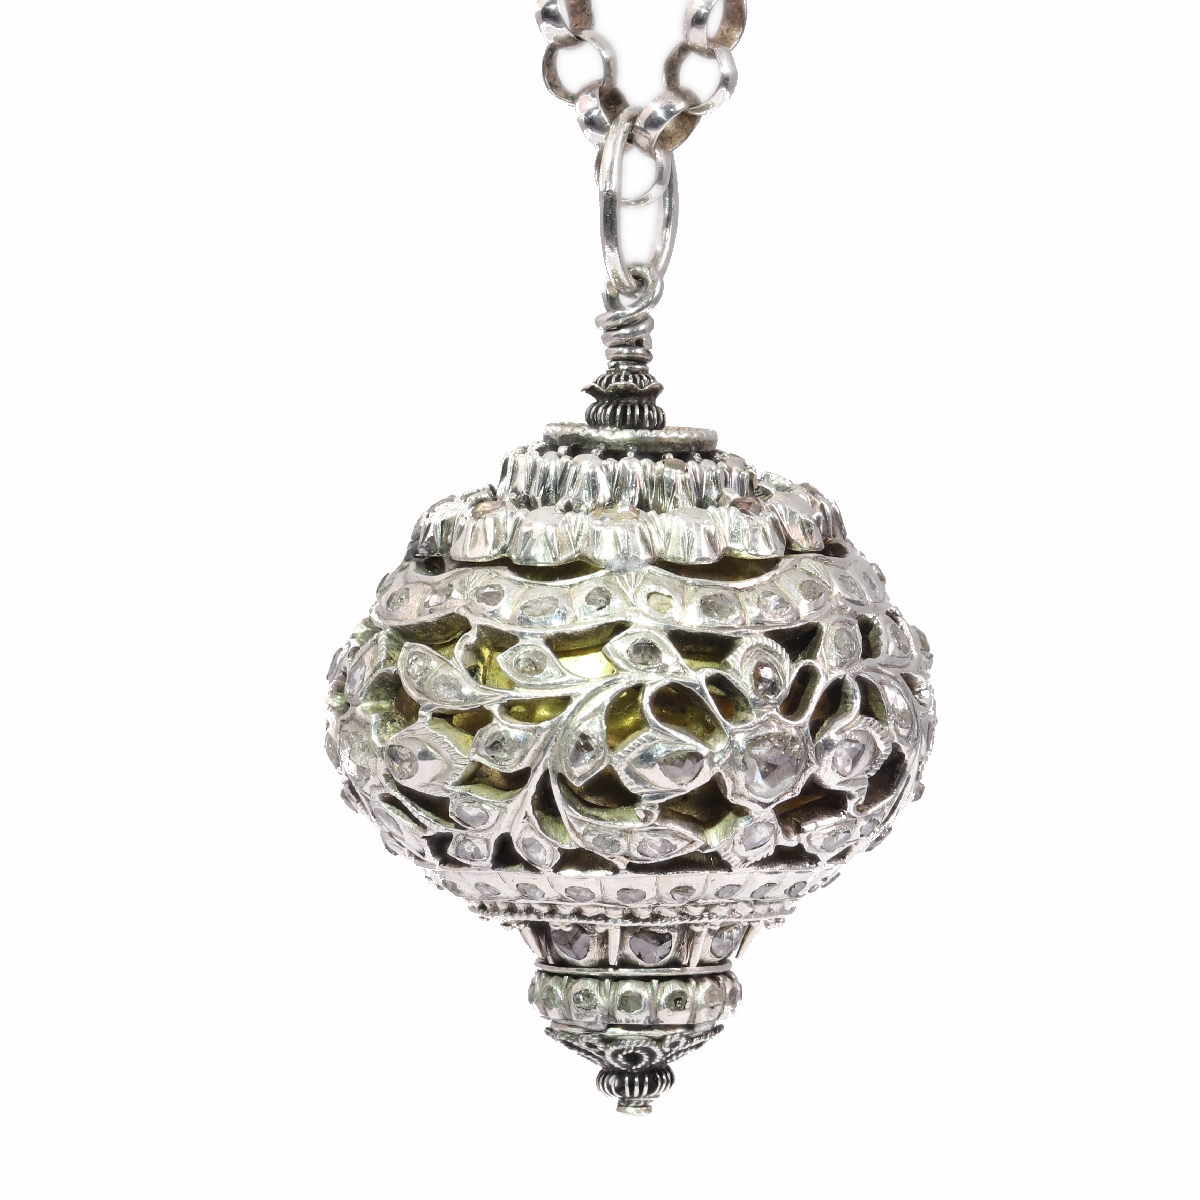 Antique 16th century diamond embellished pomander sphere